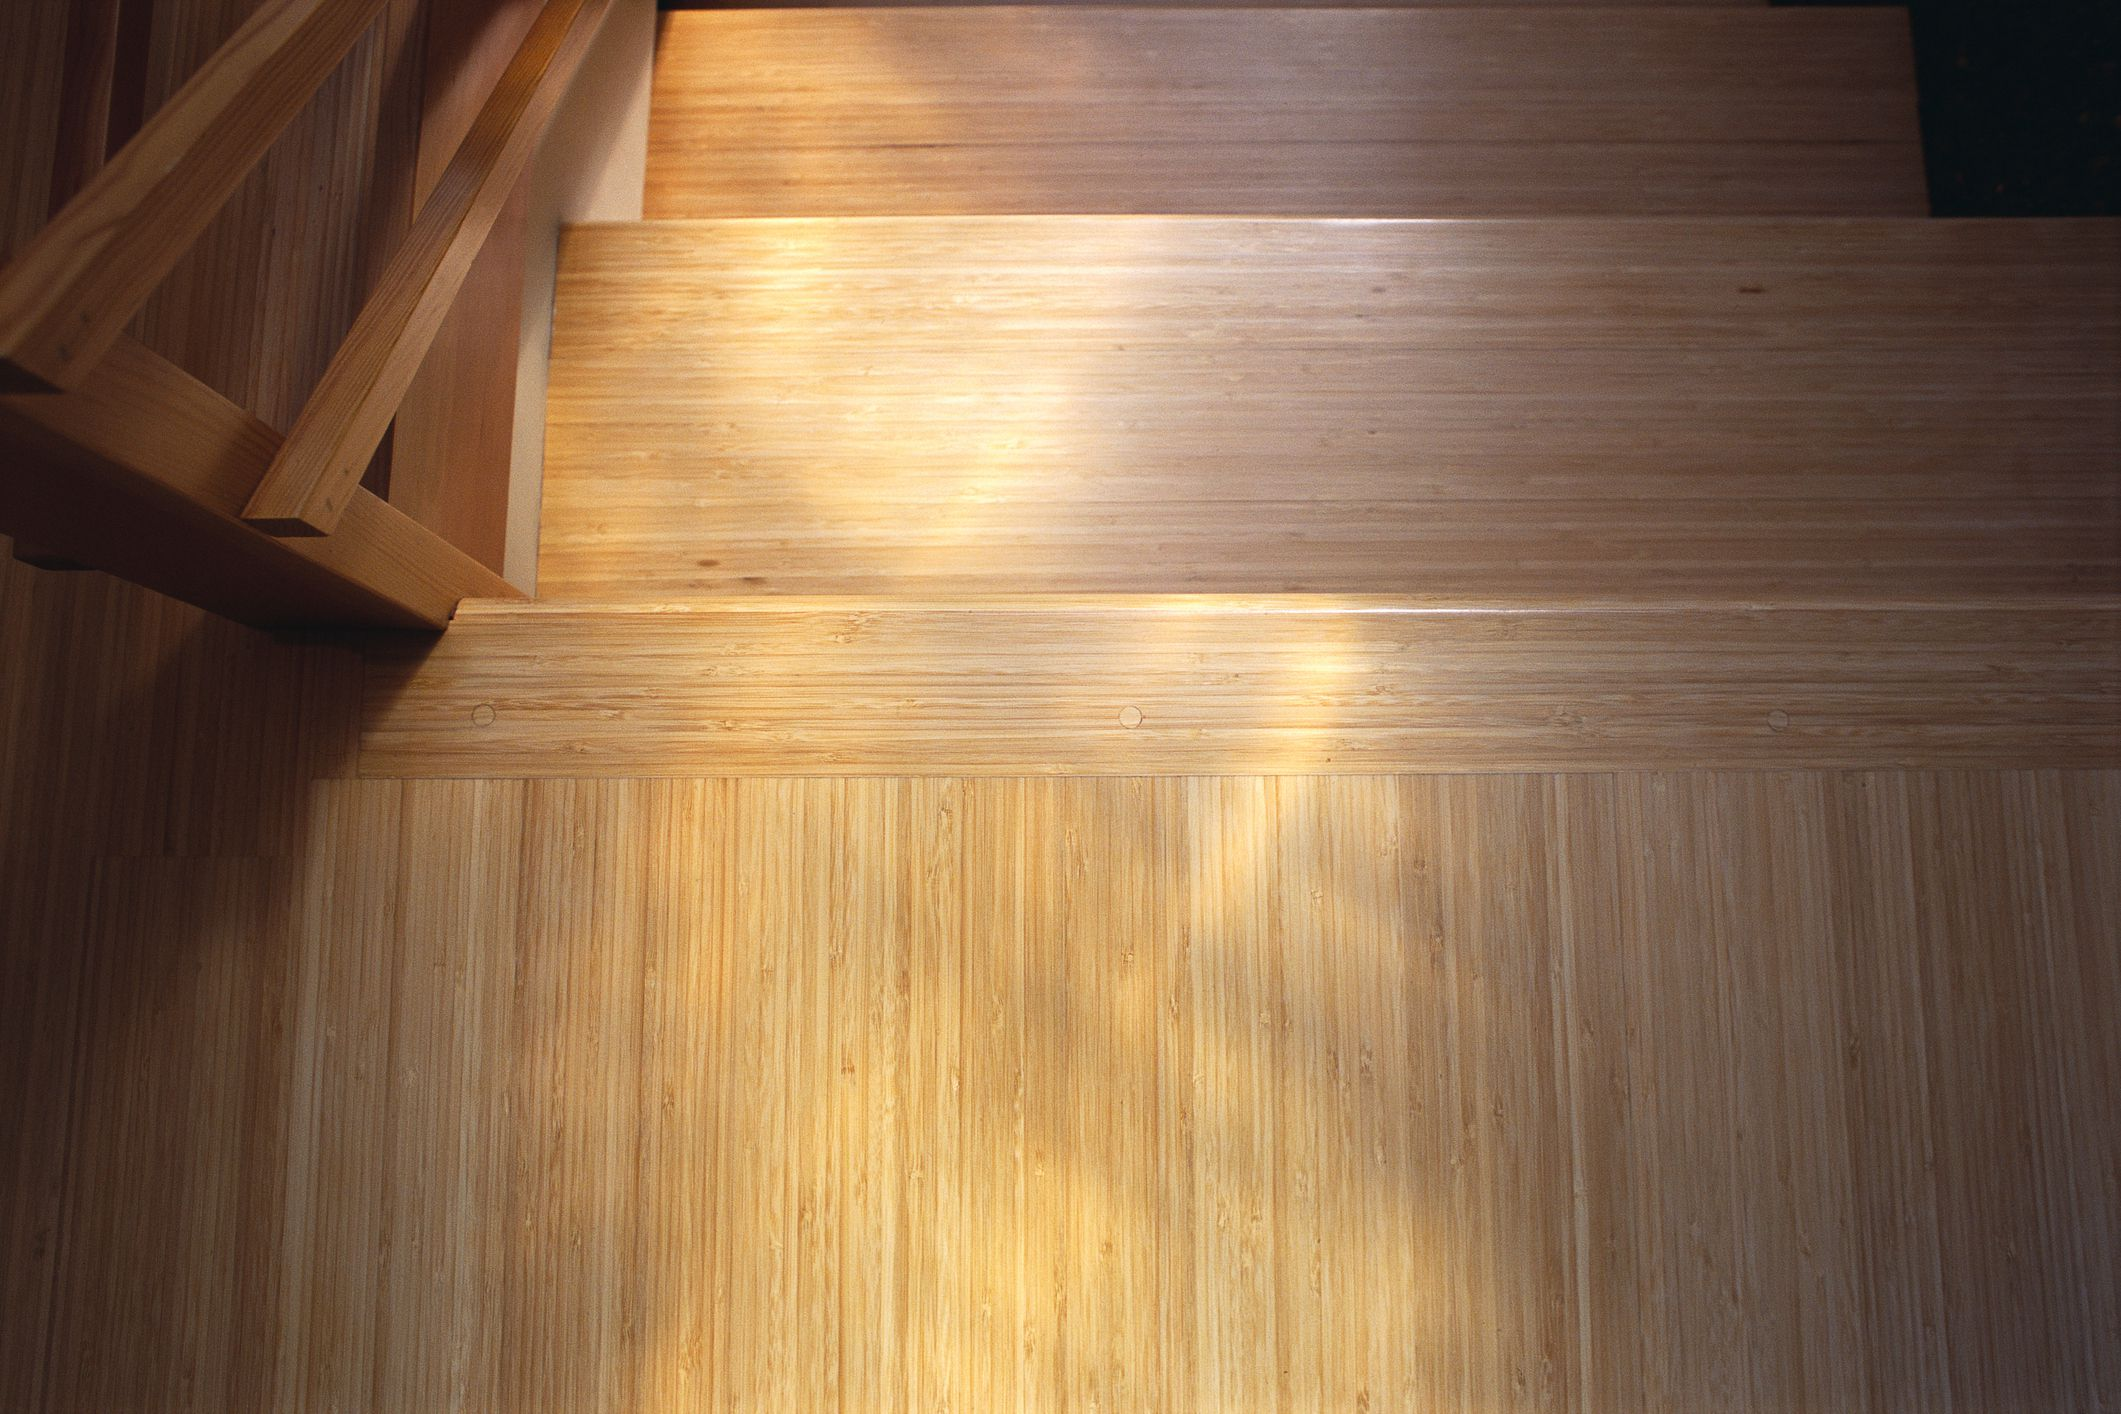 Best of can you refinish bamboo floors pics eccleshallfccom for How to get scratches out of bamboo floors